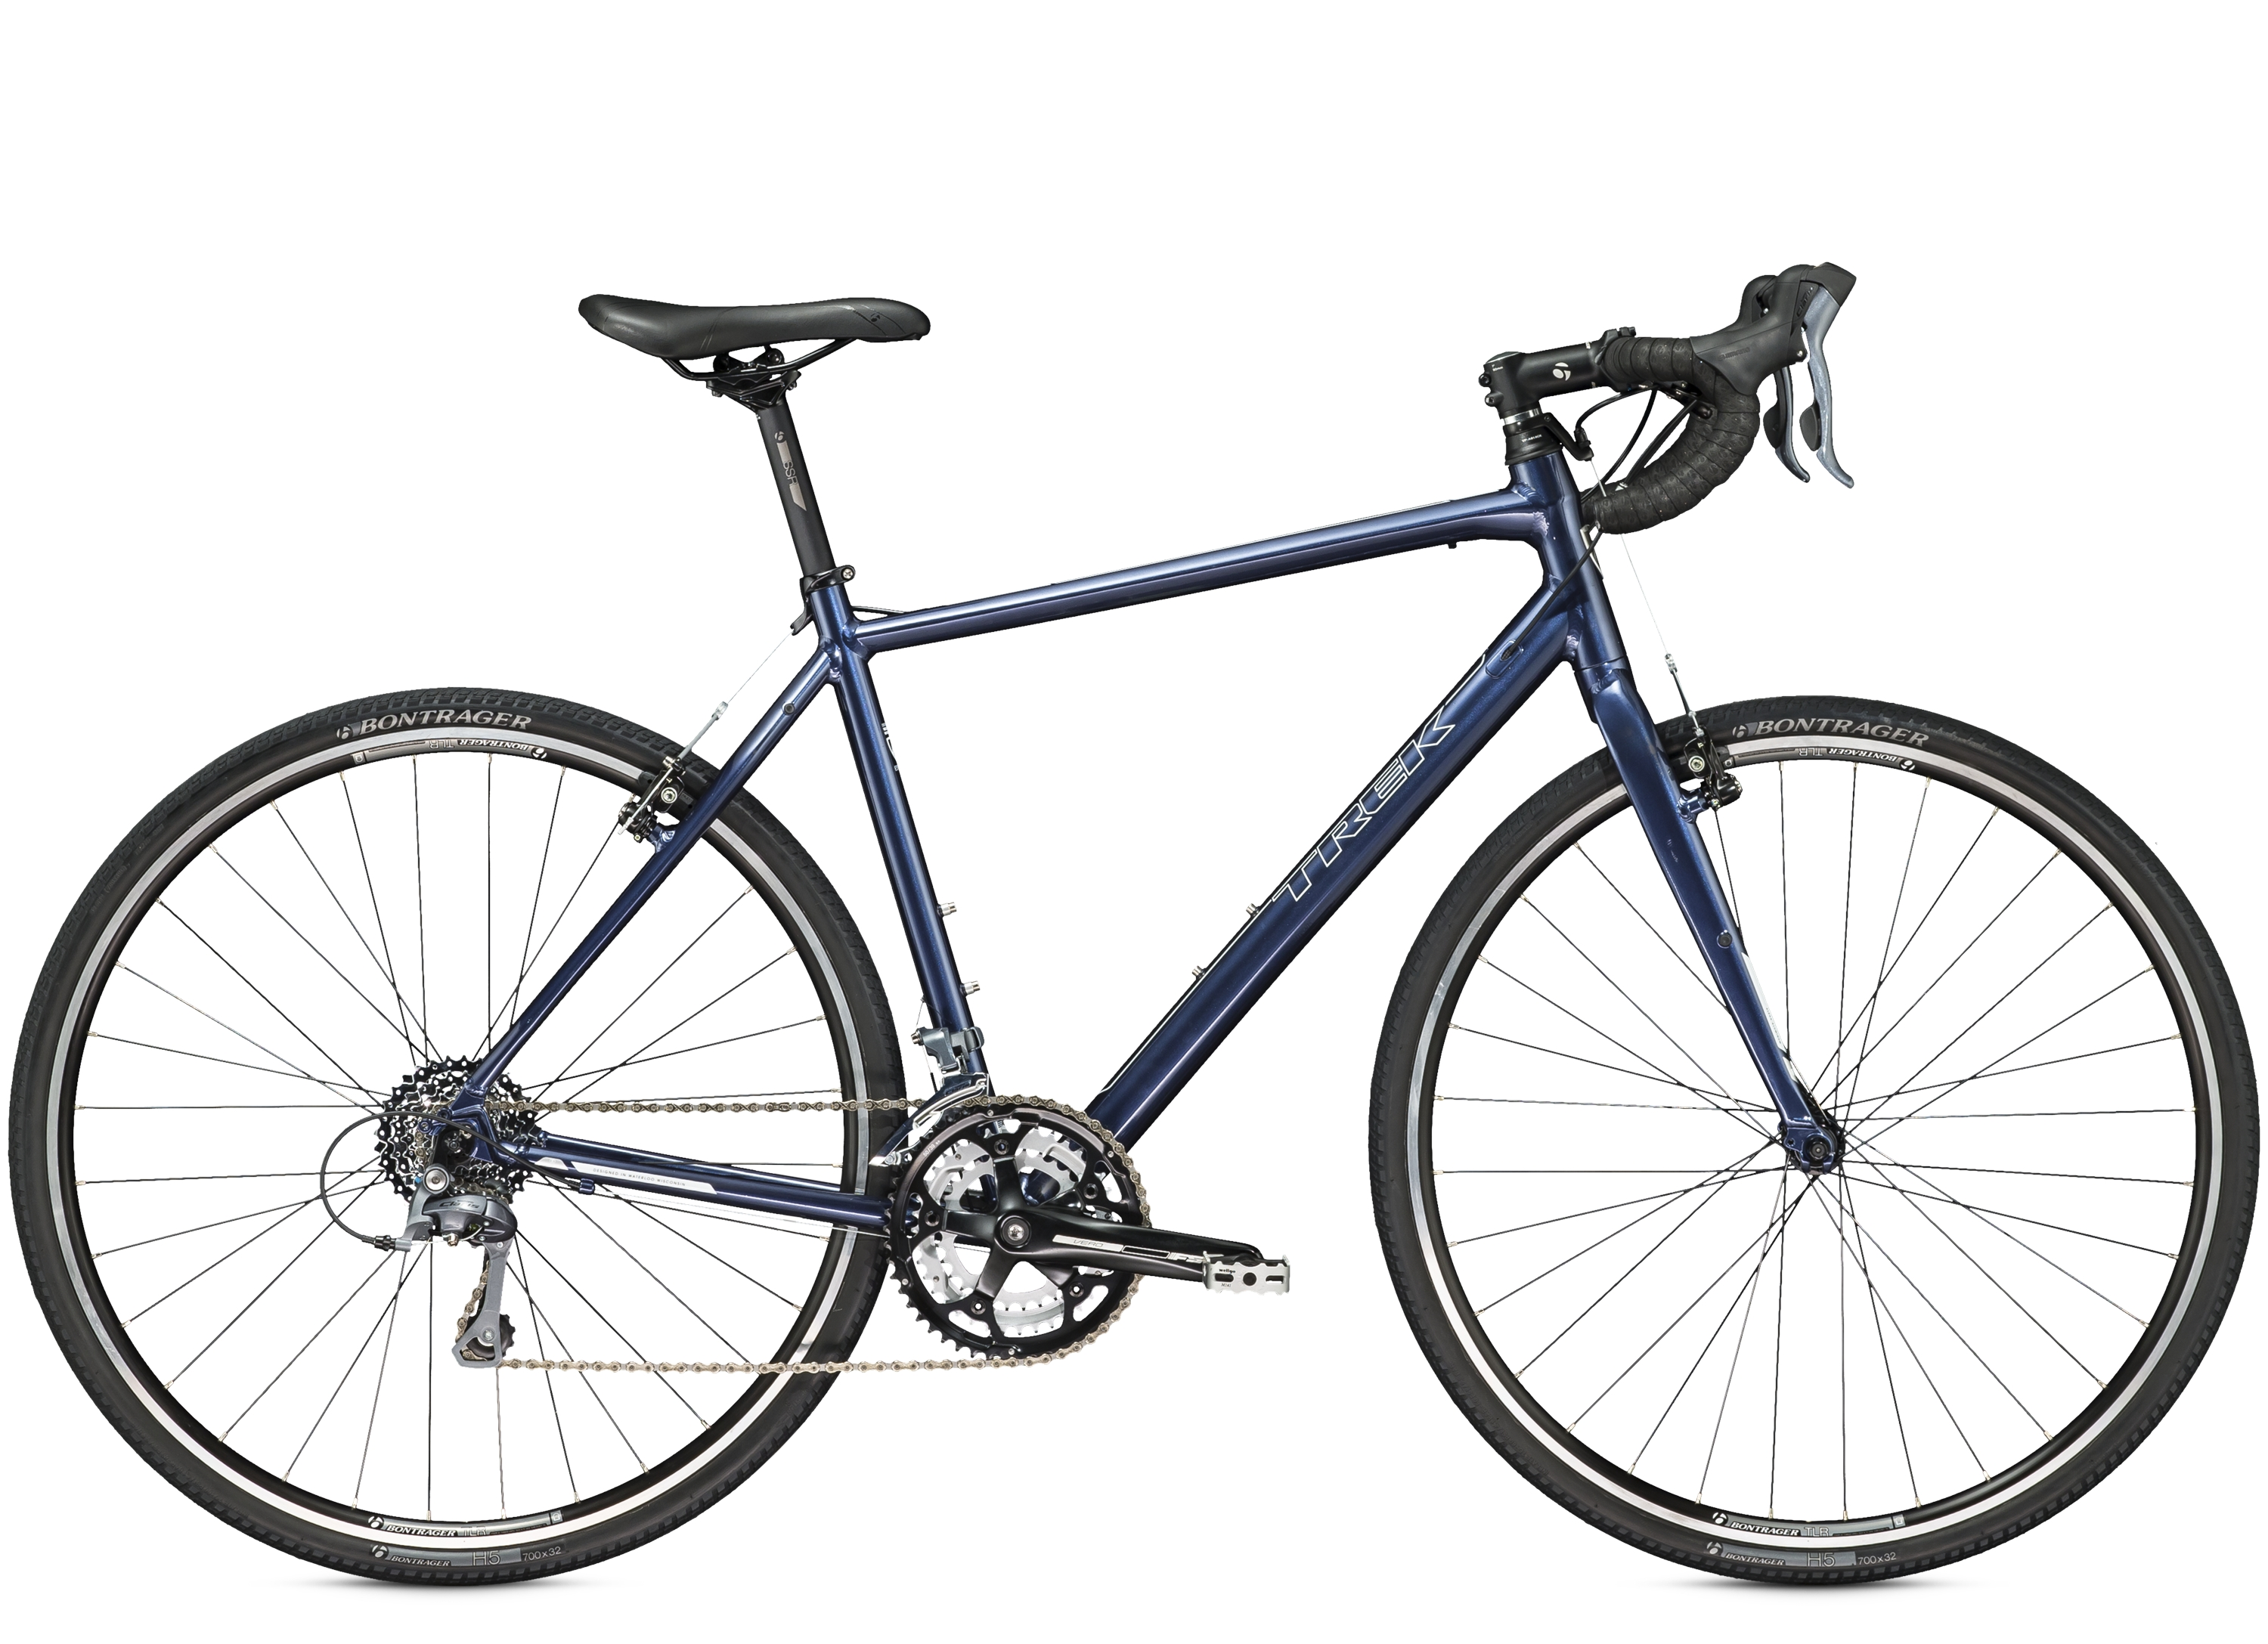 Bumsteads Road and Mountain Bikes: How To Choose The Best ...